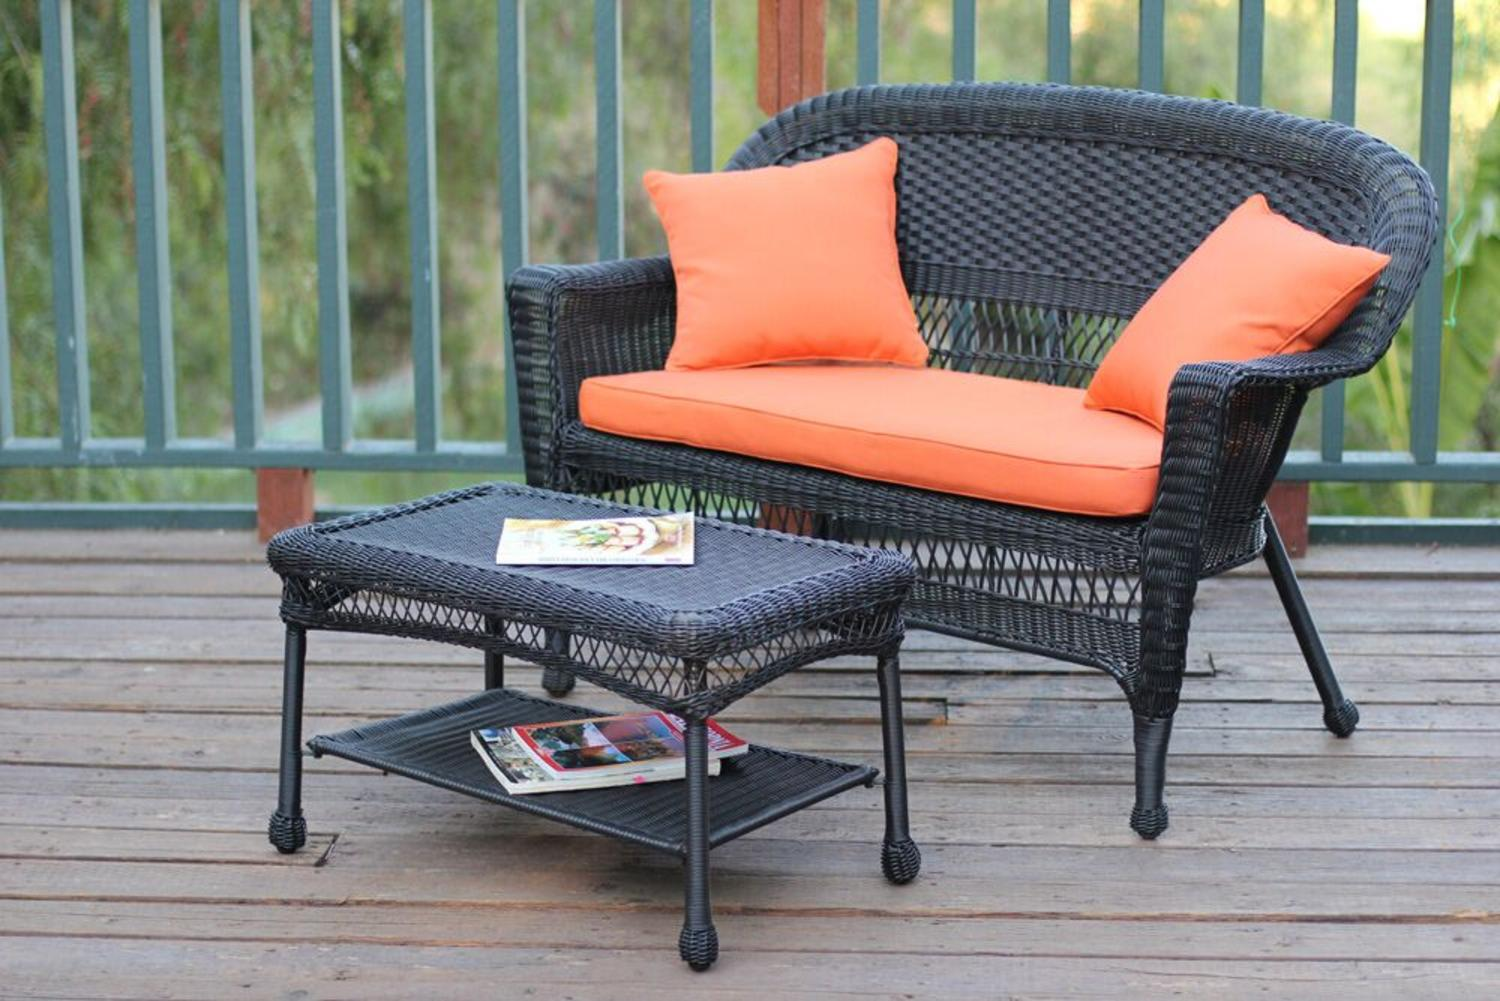 2piece oswald black resin wicker patio loveseat and coffee table set orange cushion